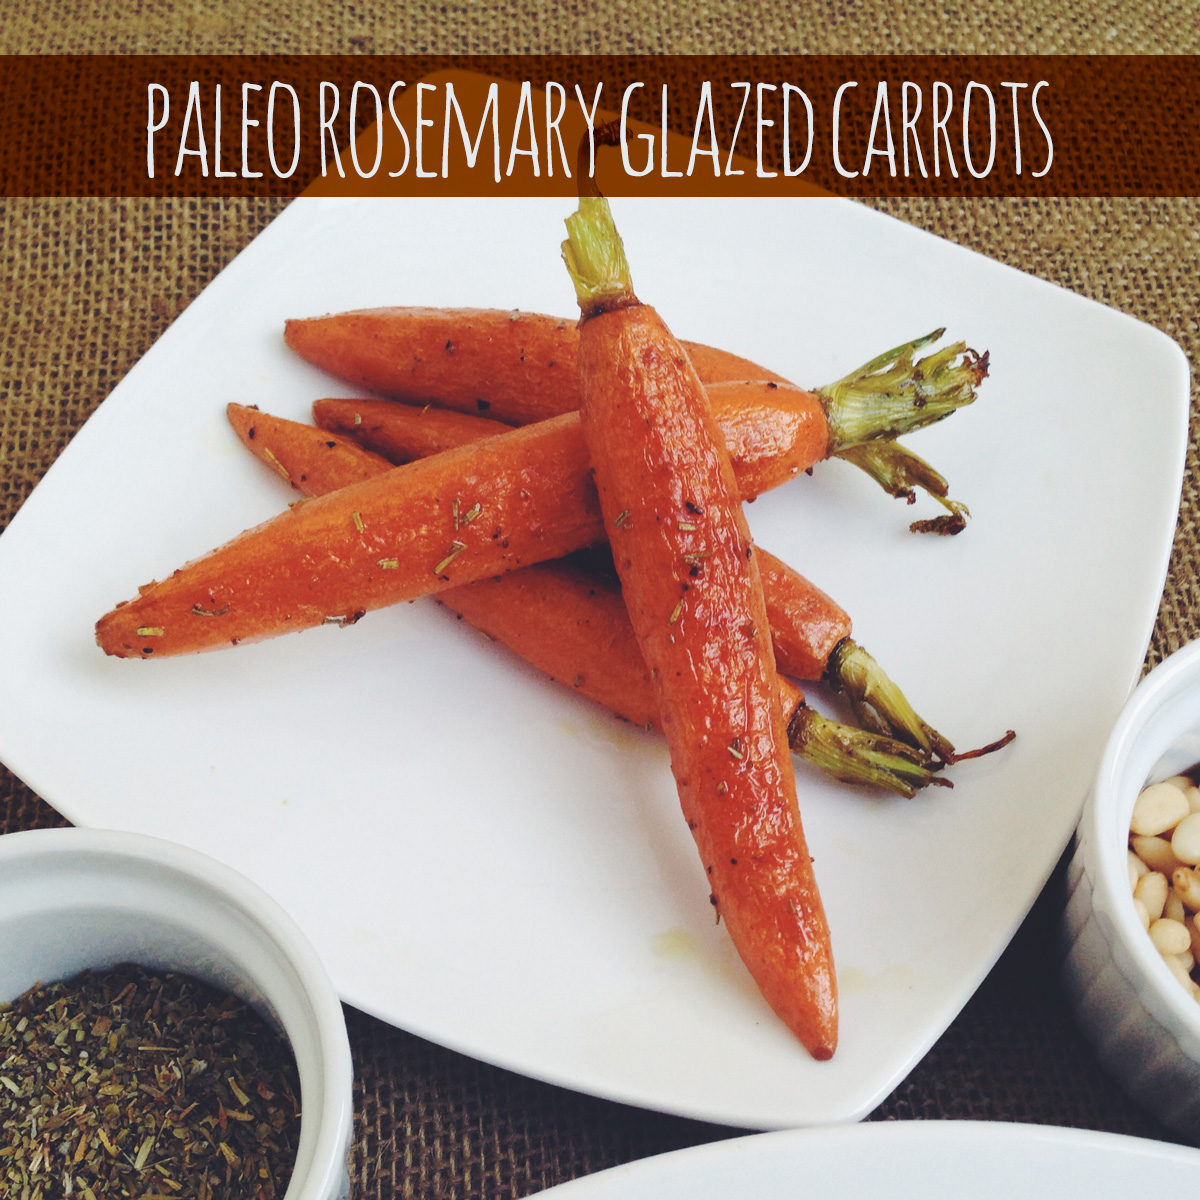 Paleo Rosemary Glazed Carrots Recipe